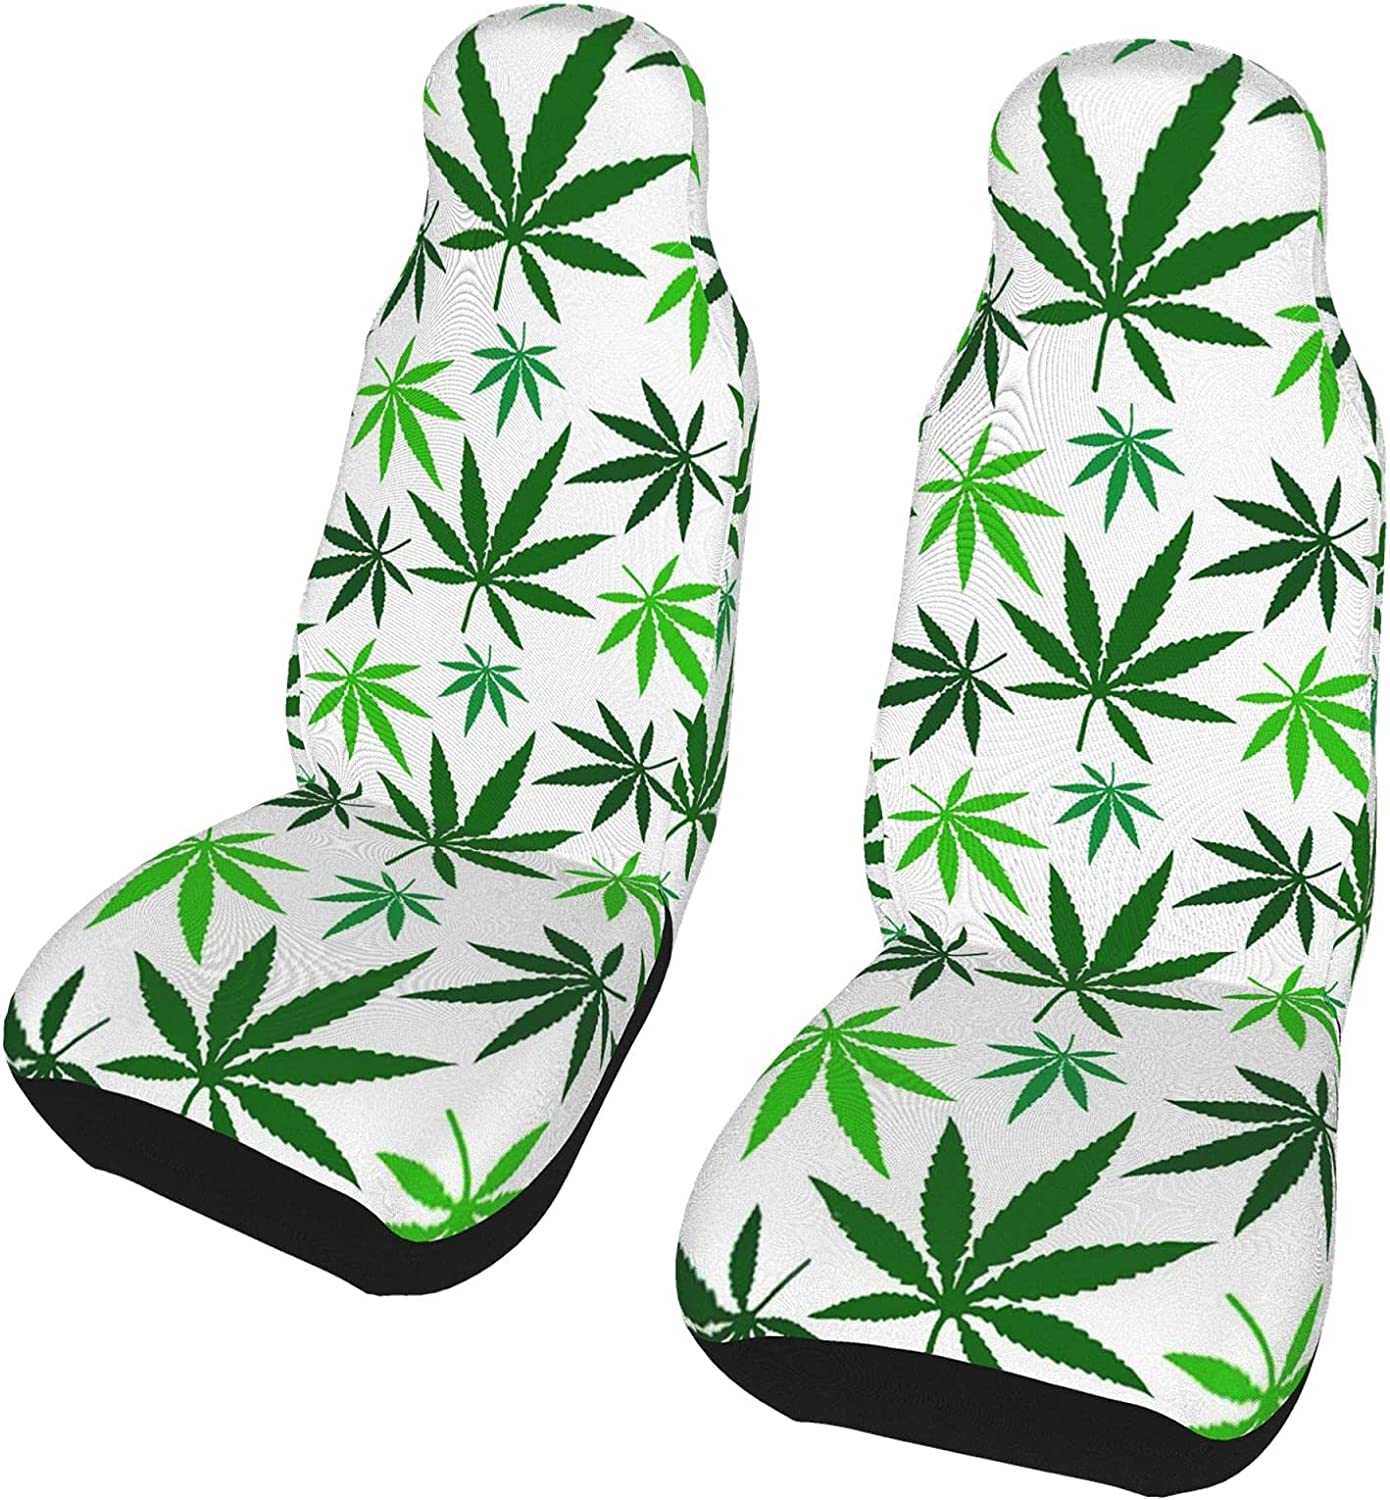 Green Weed Leaves Front Seat Covers Product 2 Univ Pcs Protector Set free Car